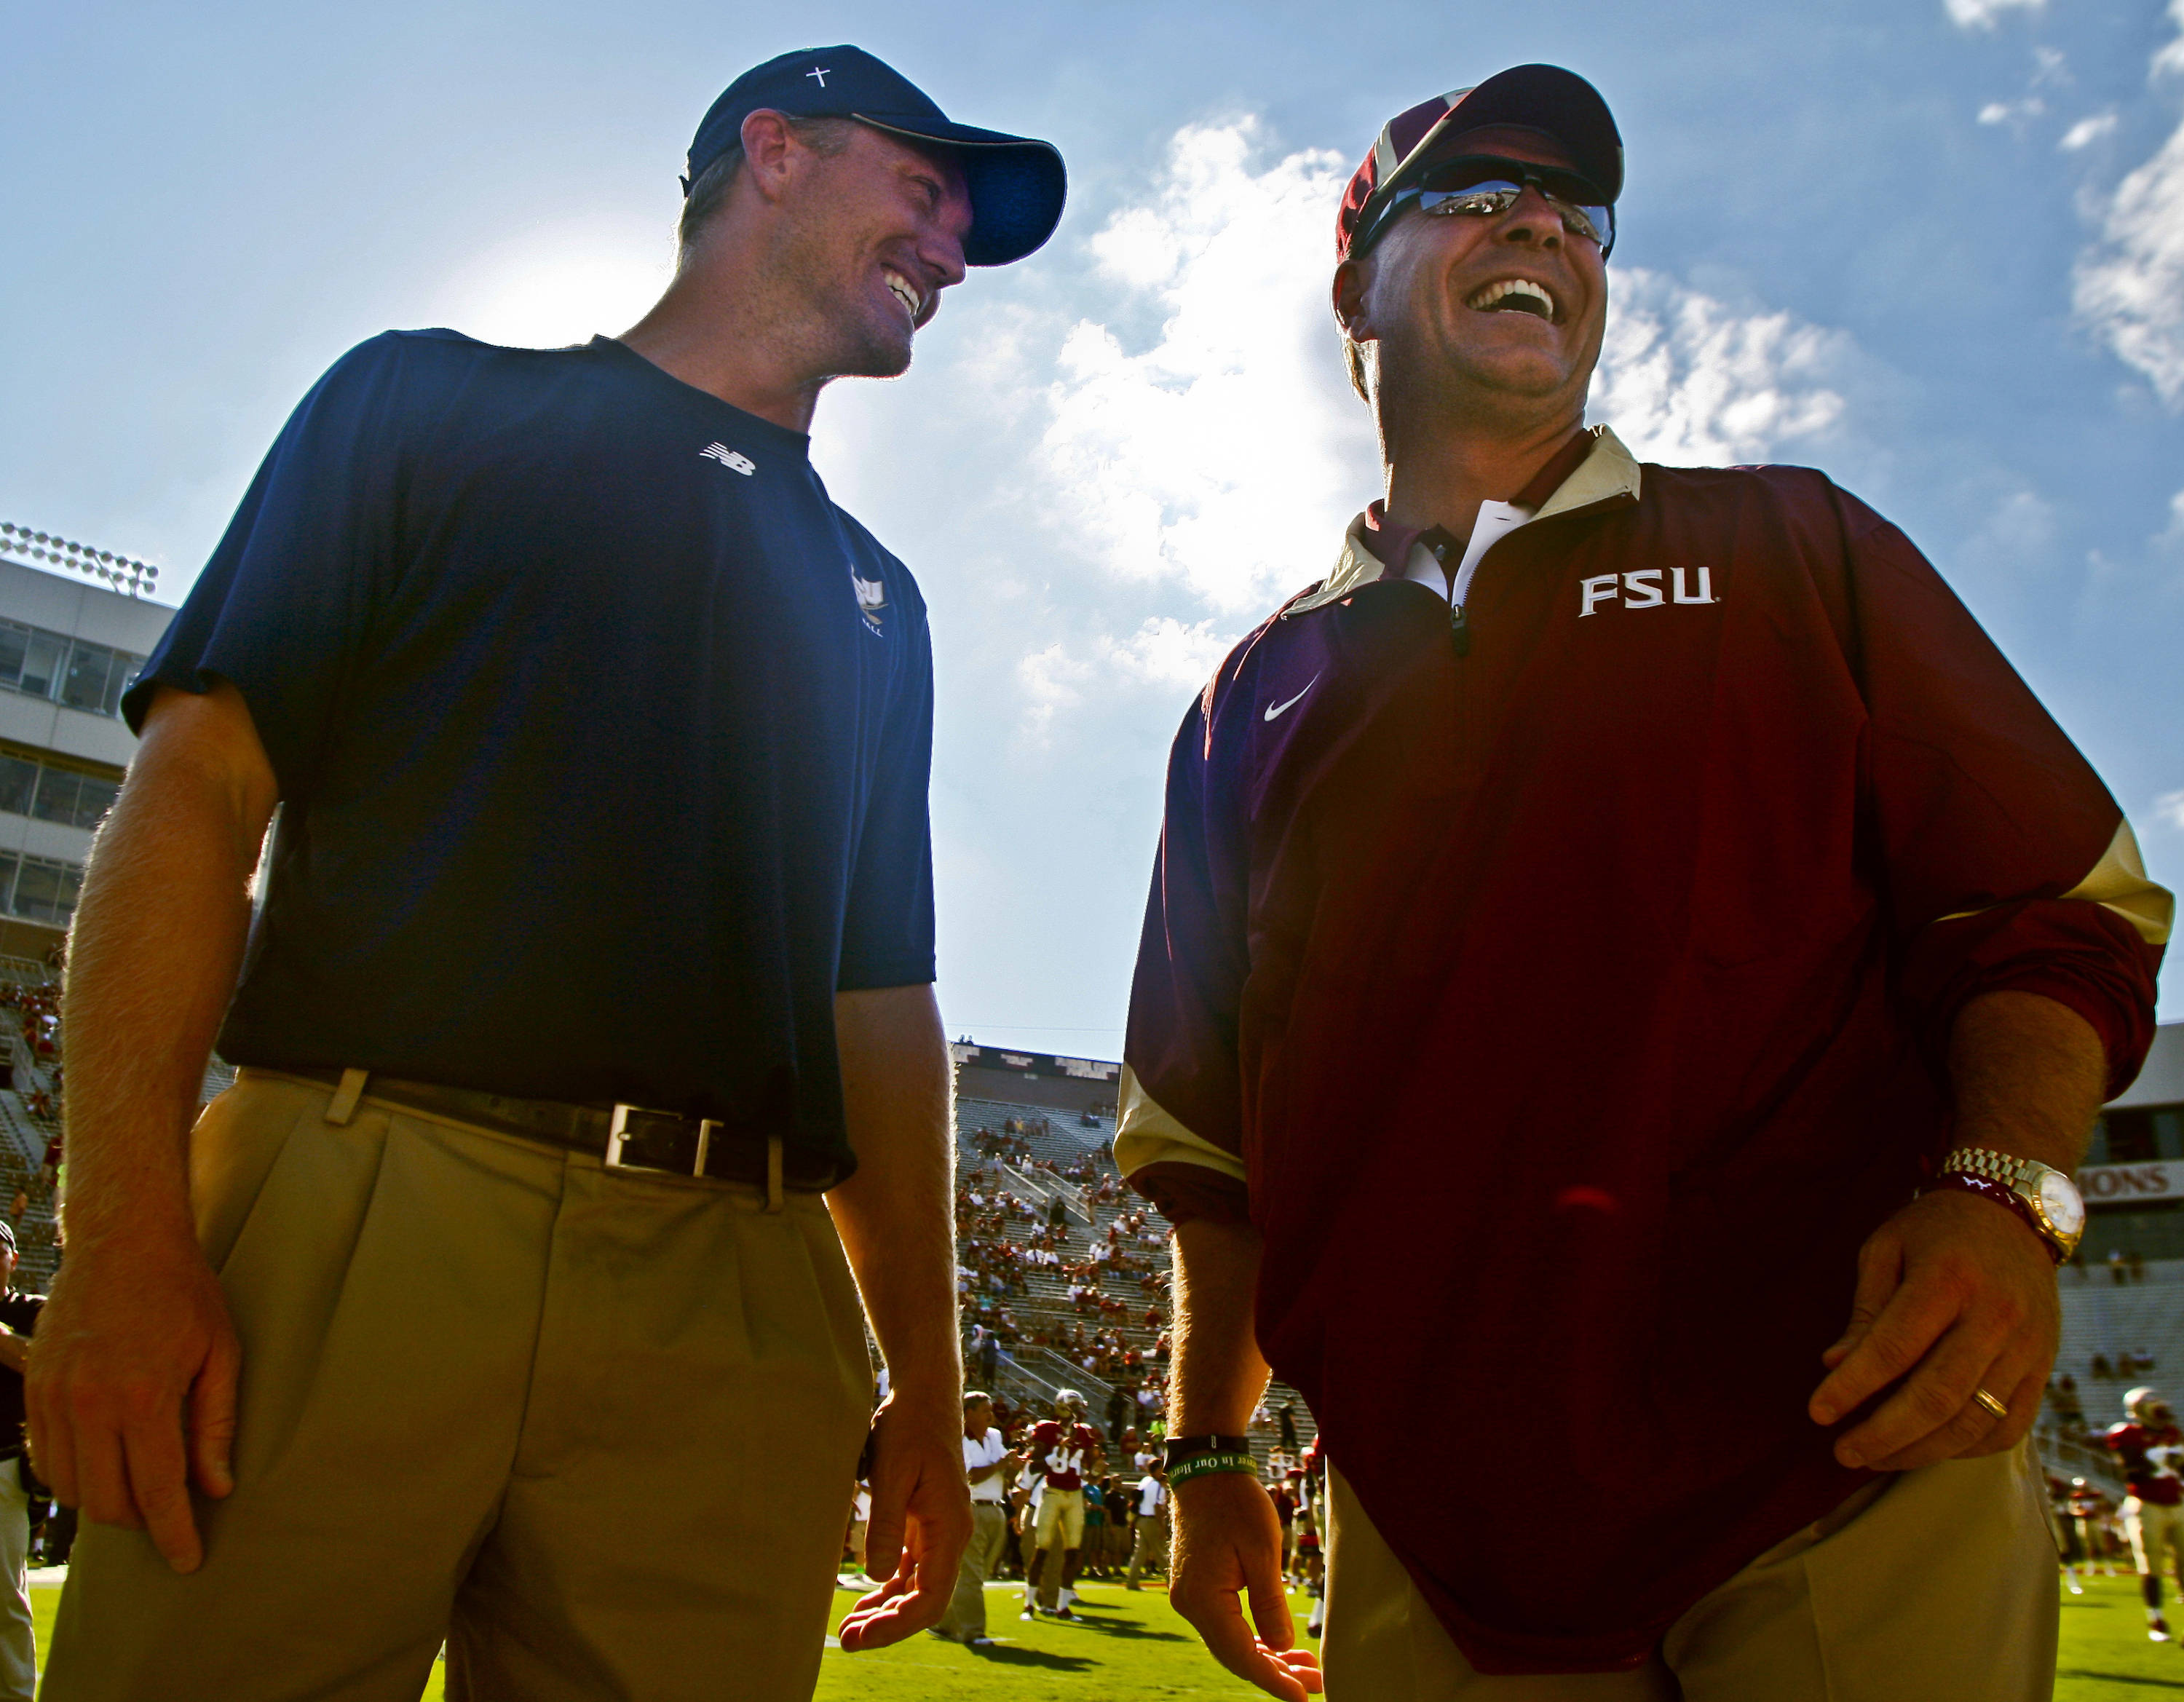 Charleston Southern offensive coordinator Patrick Nix laughs with Florida State head coach Jimbo Fisher, right, prior to the start of an NCAA college football game on Saturday, Sept. 10, 2011, in Tallahassee, Fla. Nix was a quarterback at Auburn in the mid-90s while Fisher was the quarterback coach there. (AP Photo/Phil Sears)